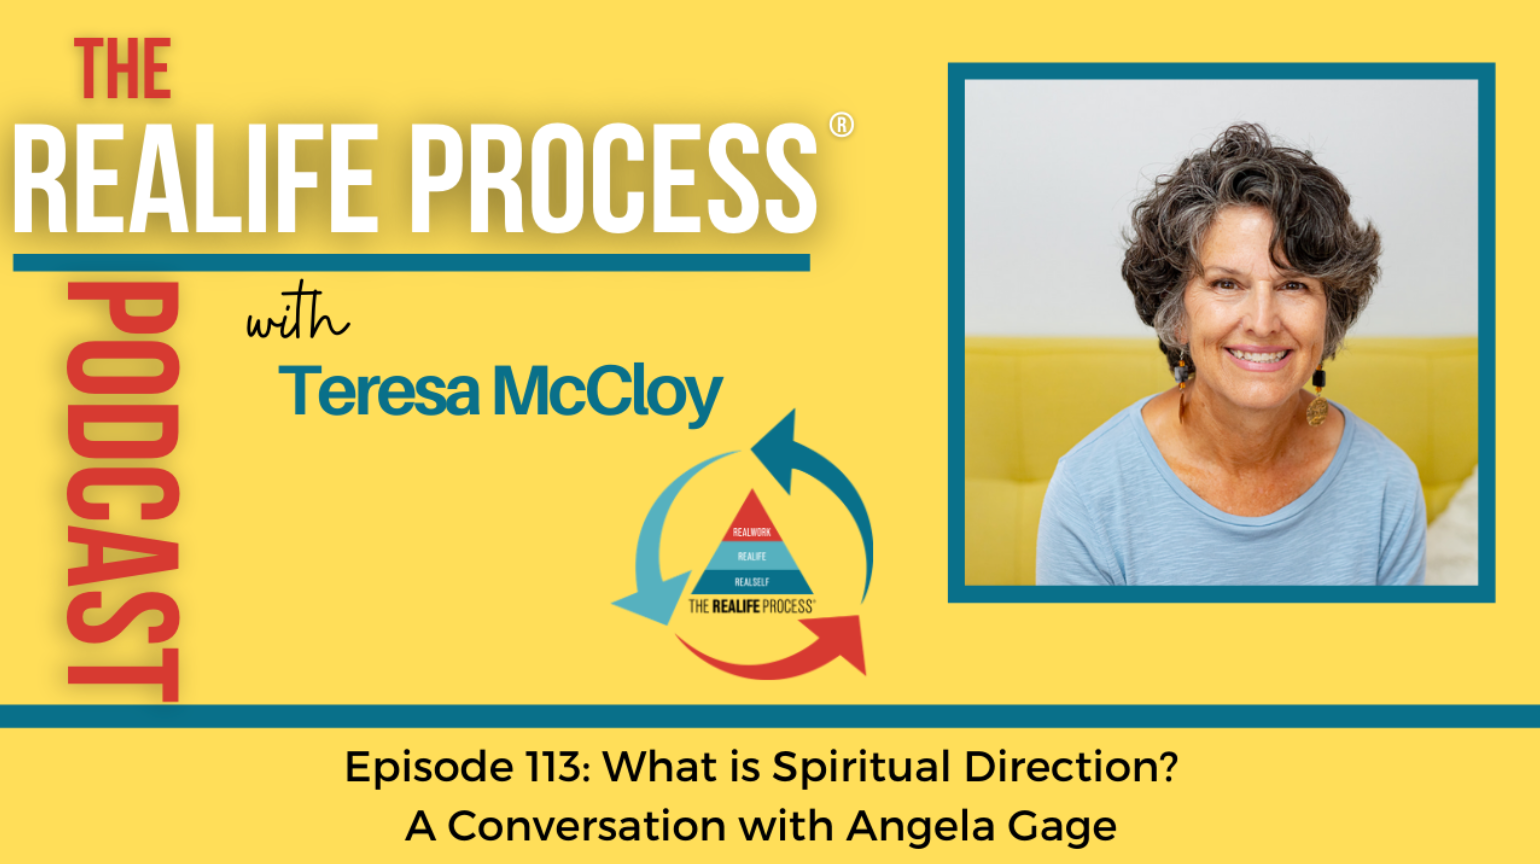 The Realife Process Podcast